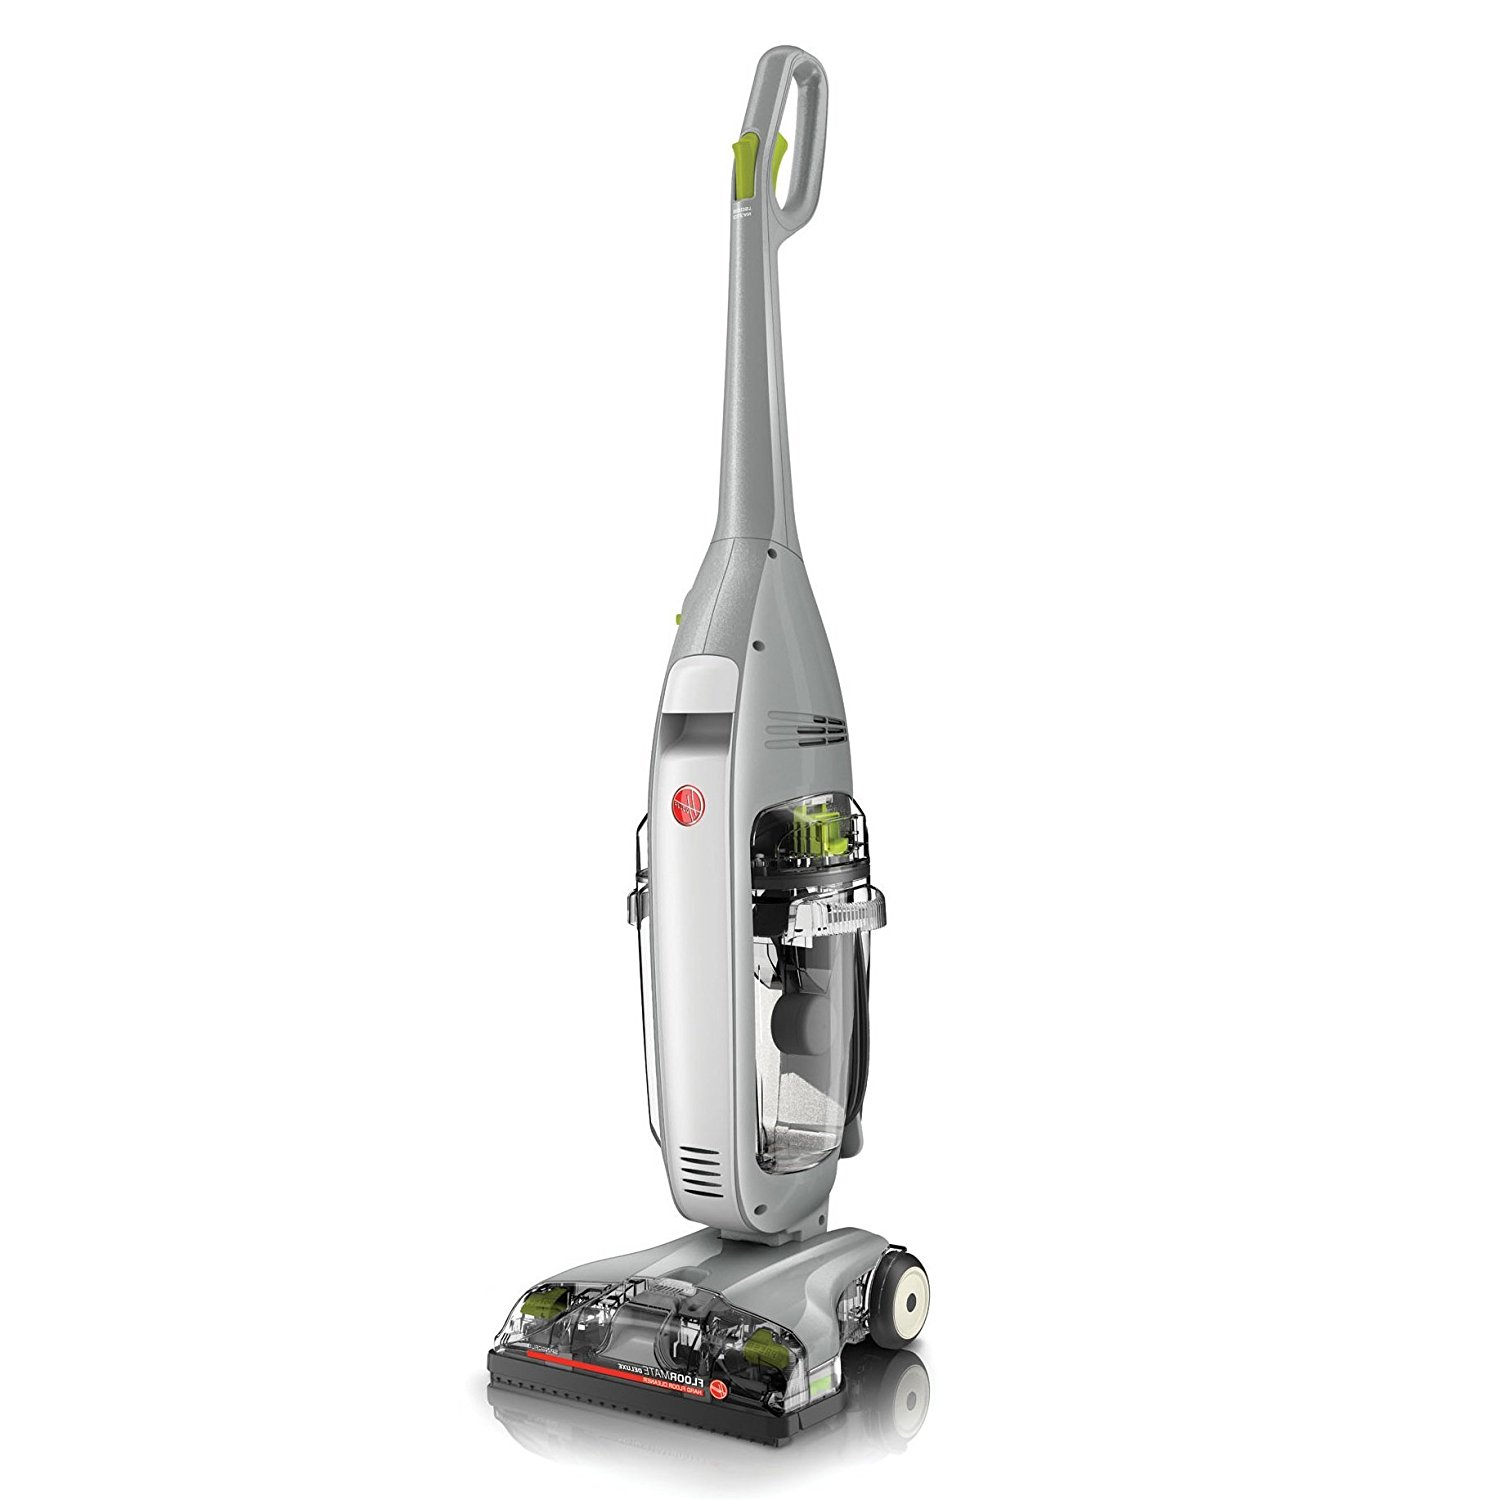 Cheap Tile Floor Cleaning Machines Find Tile Floor Cleaning - Carpet and tile floor cleaning machines